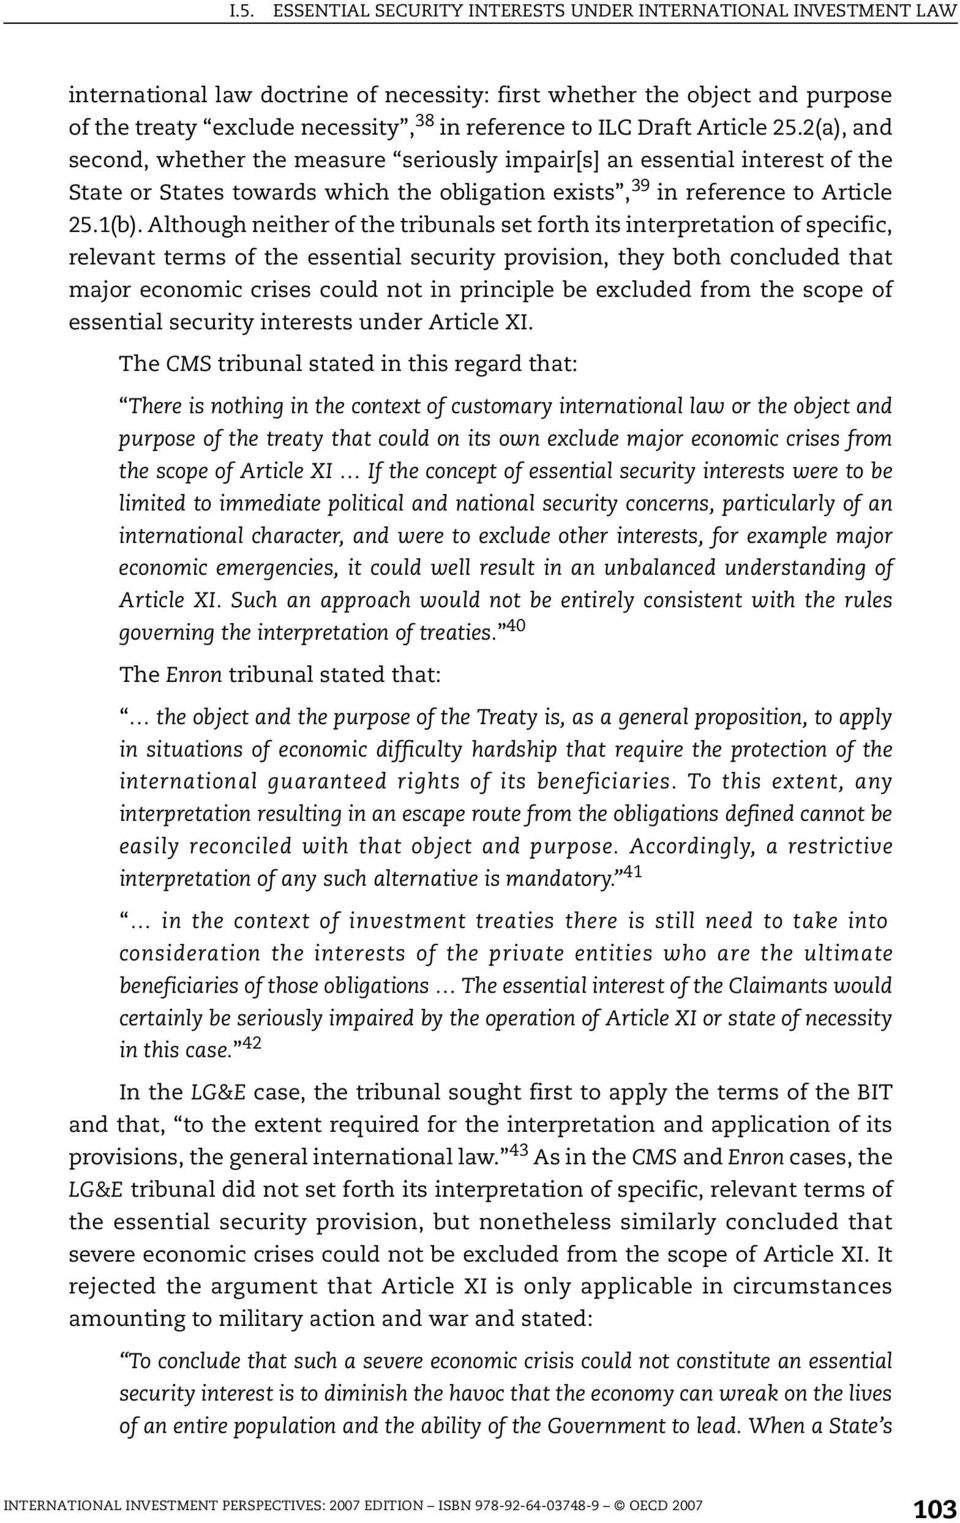 Although neither of the tribunals set forth its interpretation of specific, relevant terms of the essential security provision, they both concluded that major economic crises could not in principle